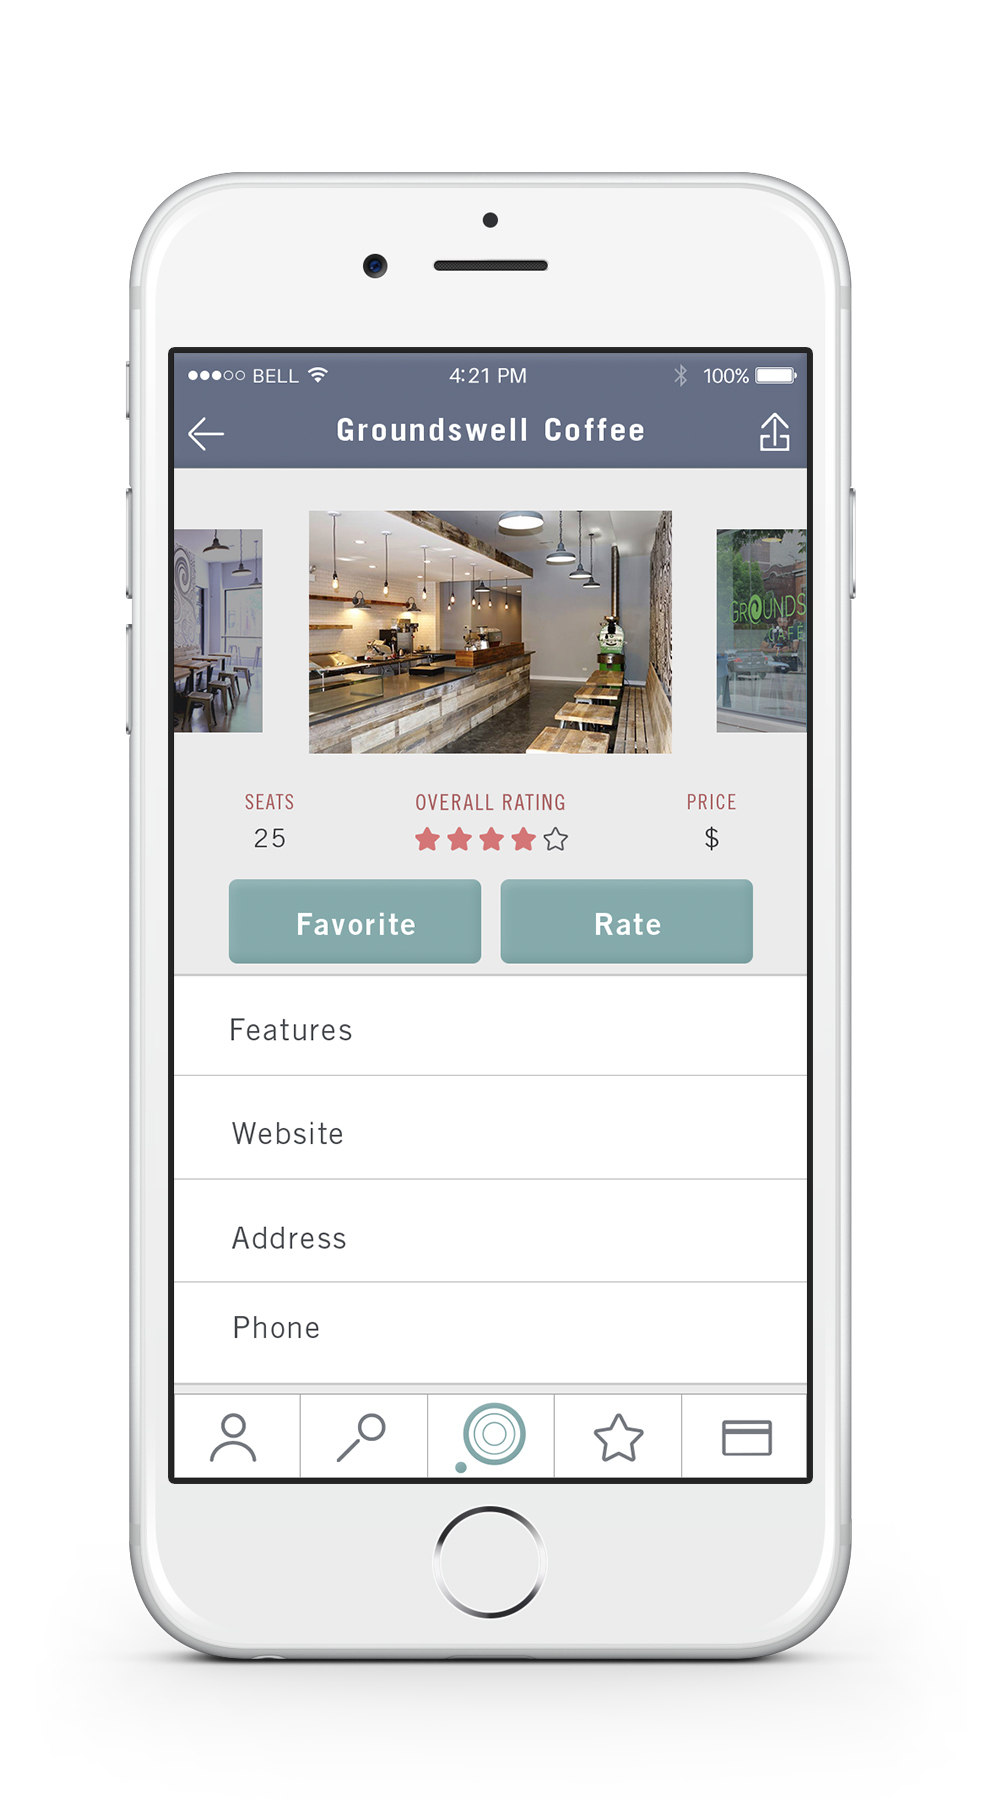 "Location Profile    —   Each location has a profile page that describes the number of seats currently available, overall rating and price. The user can also find business features and basic information about the location, such as the address and phone number. Tapping the ""Favorite"" button will add the location to the user's favorites list. Tapping the ""Rate"" button will allow the user to rate the location."